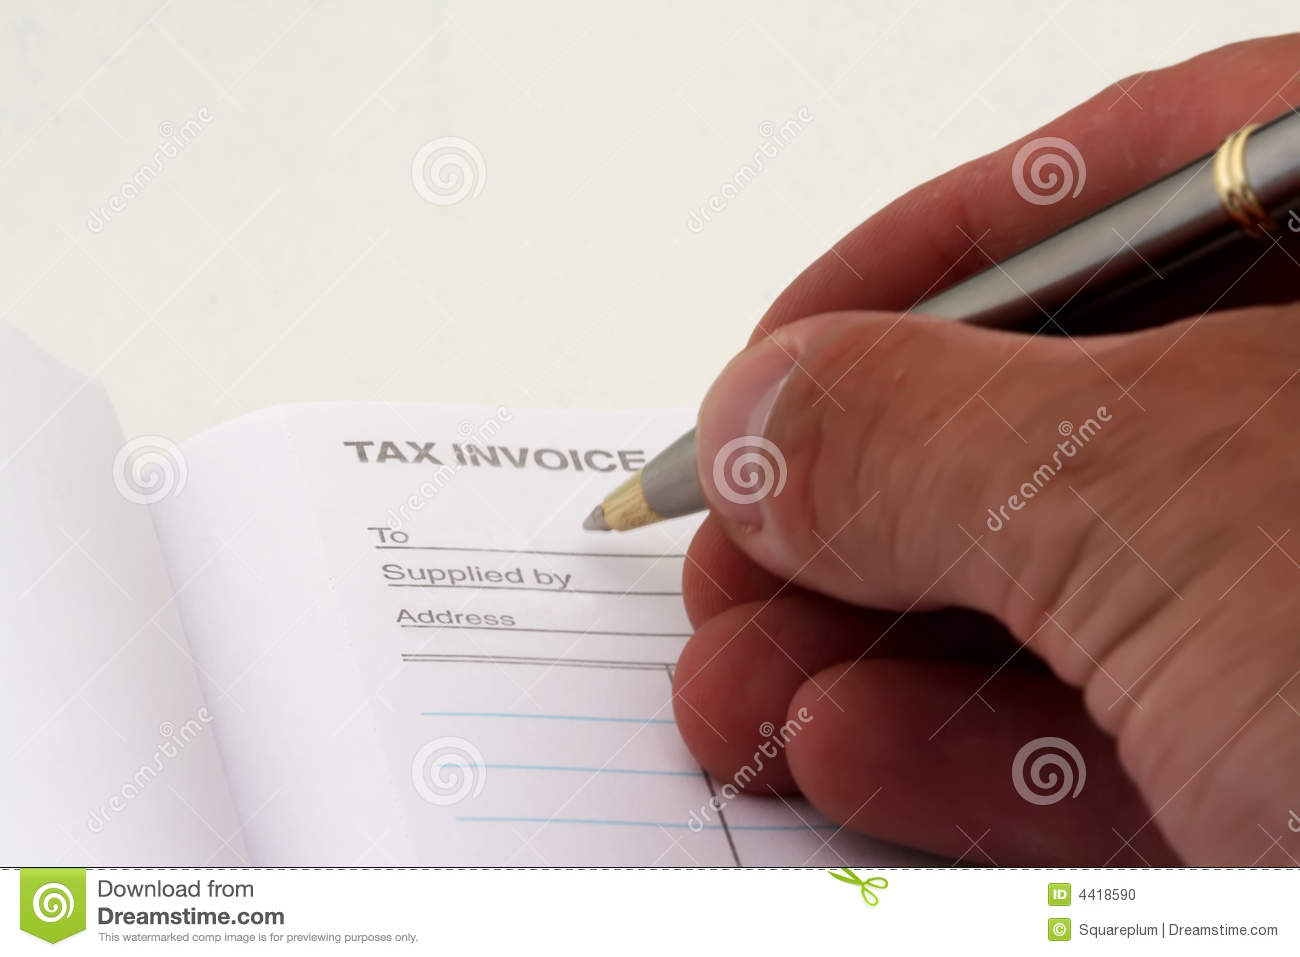 Beef Stew Receipt Word Tax Invoice Stock Photo  Image  Receipt Of Payment Template Excel with Target Returns Without Receipt Invoice Pen Tax  Fake Receipts